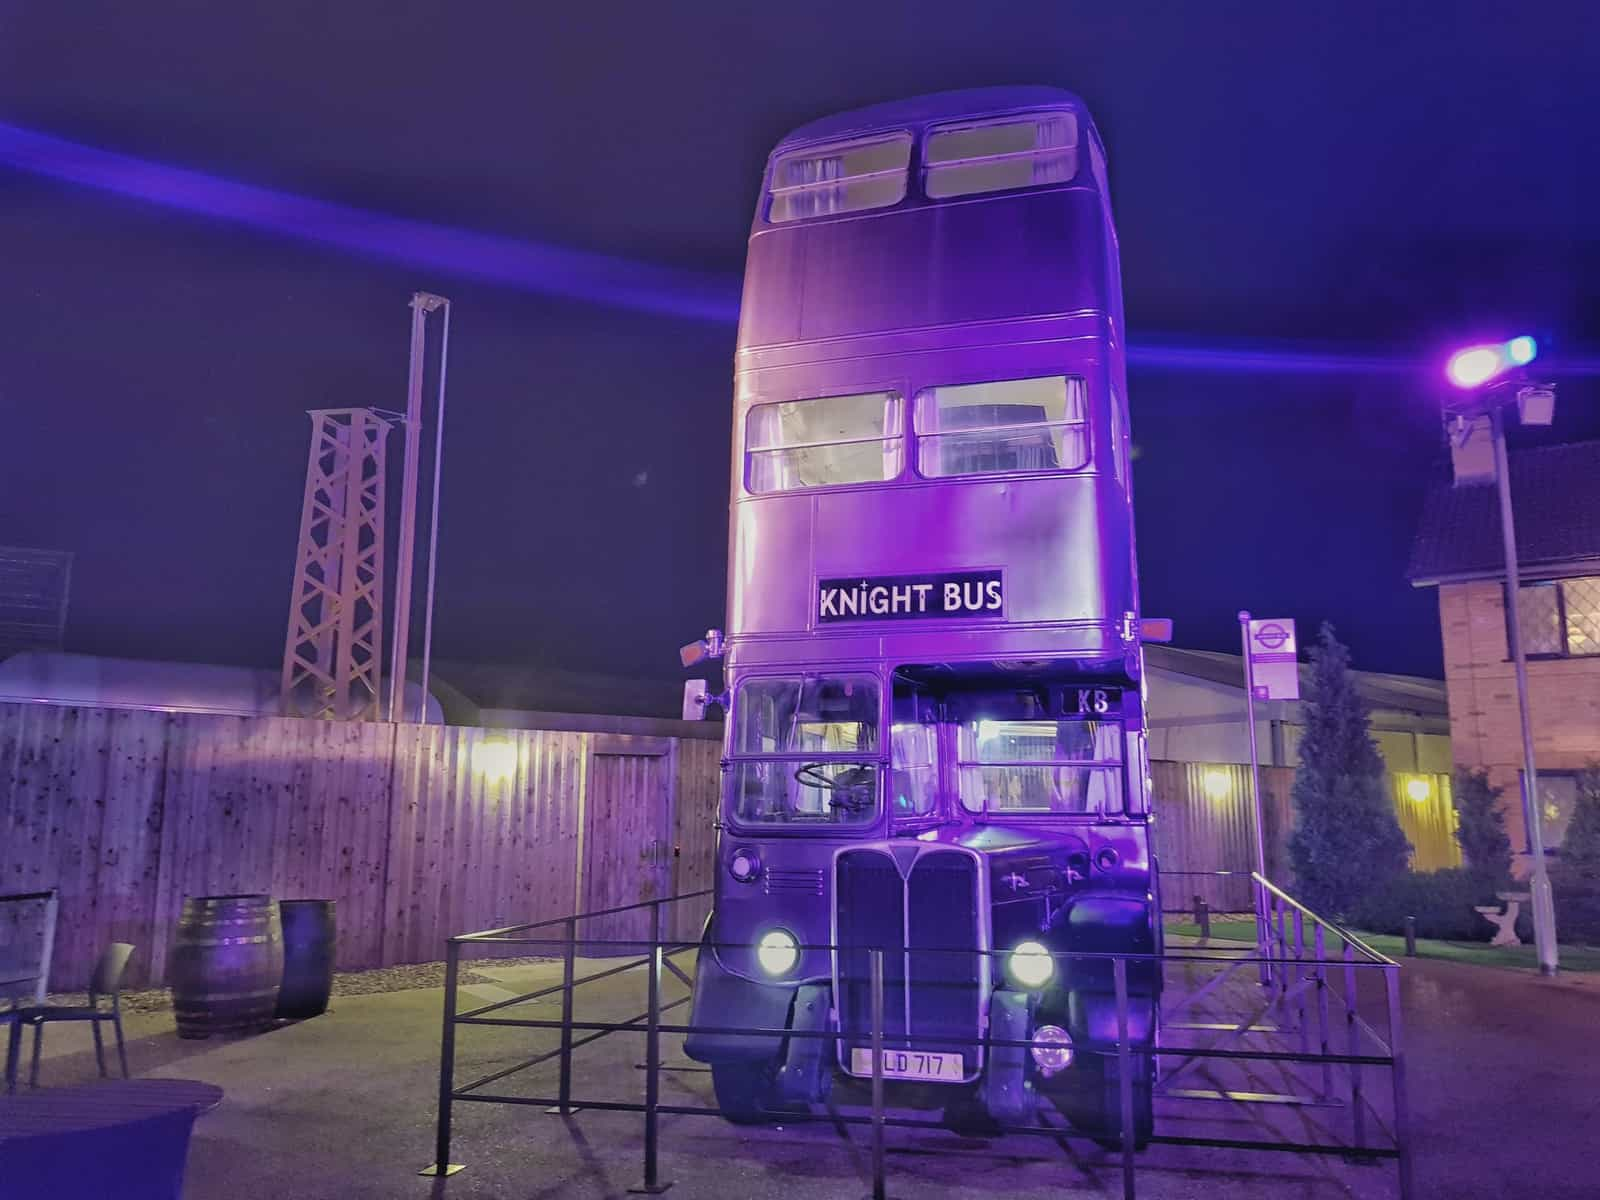 the Knight bus in the dark